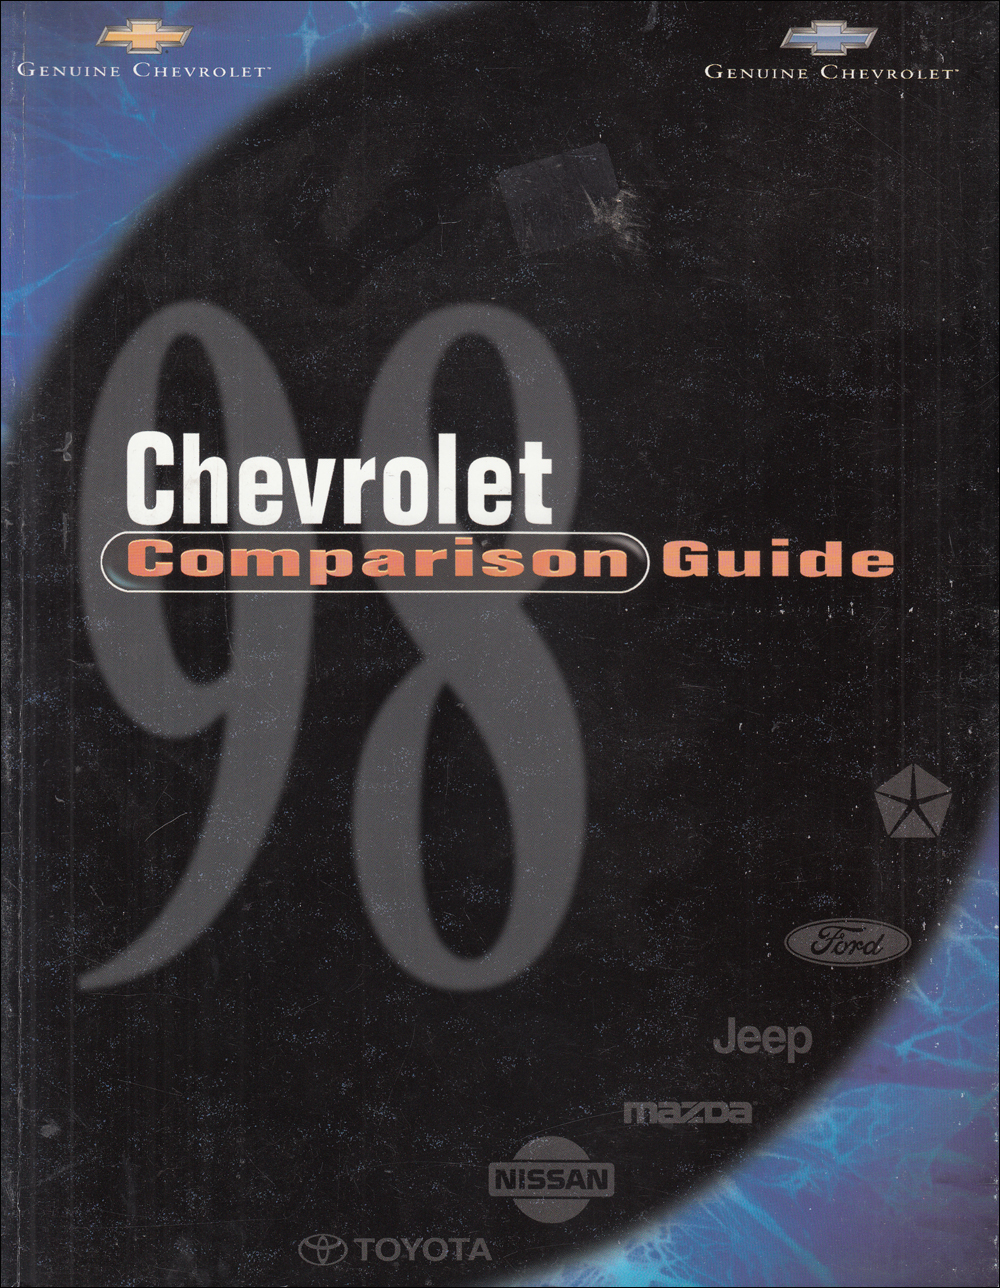 1998 Chevrolet Competitive Comparison Dealer Album Original